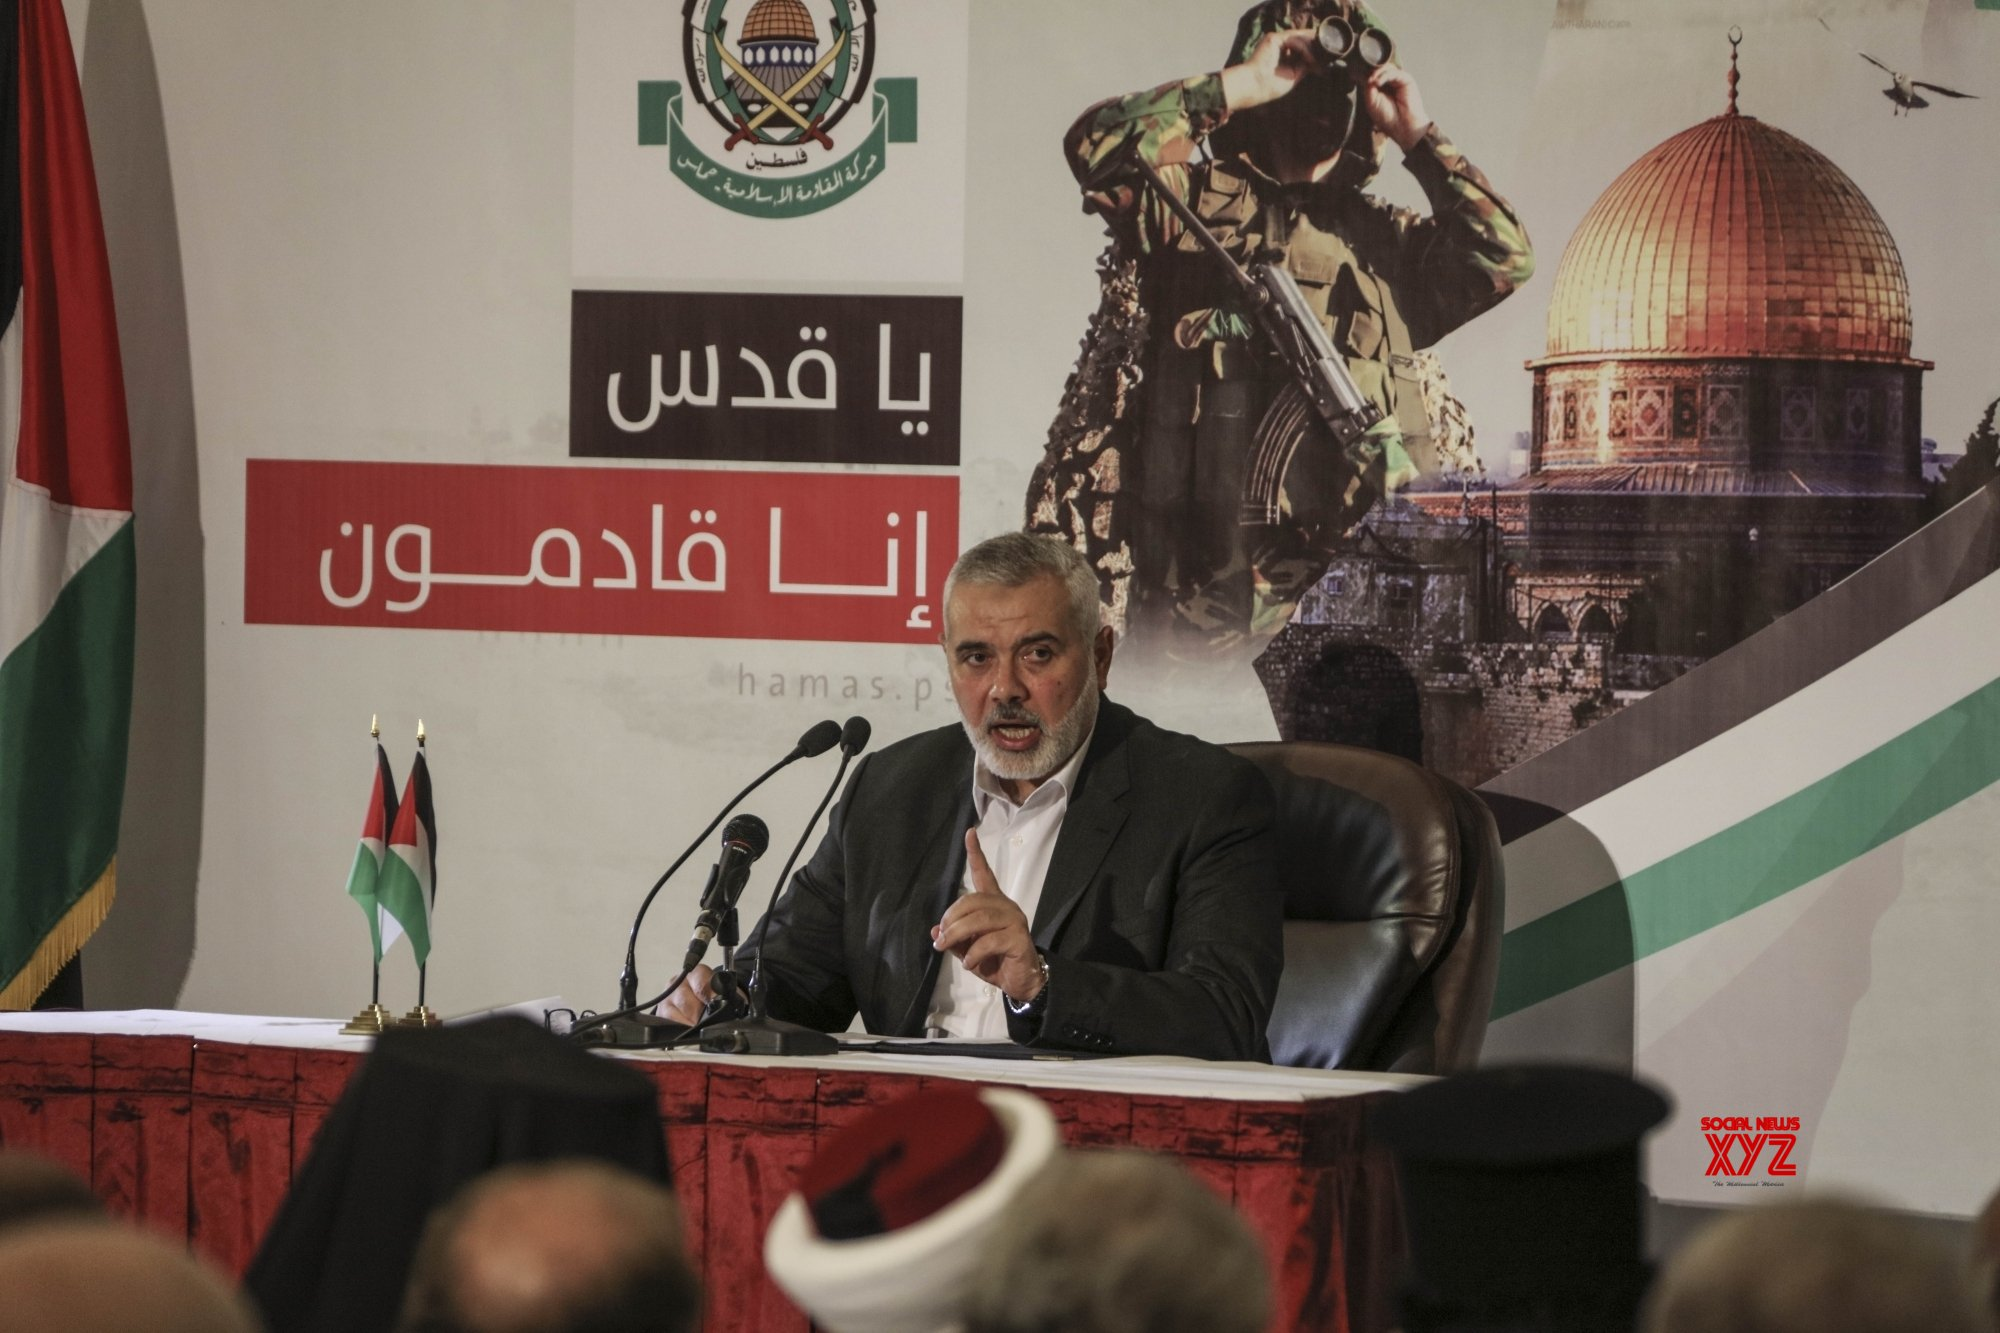 Hamas agrees to hold elections in Palestine